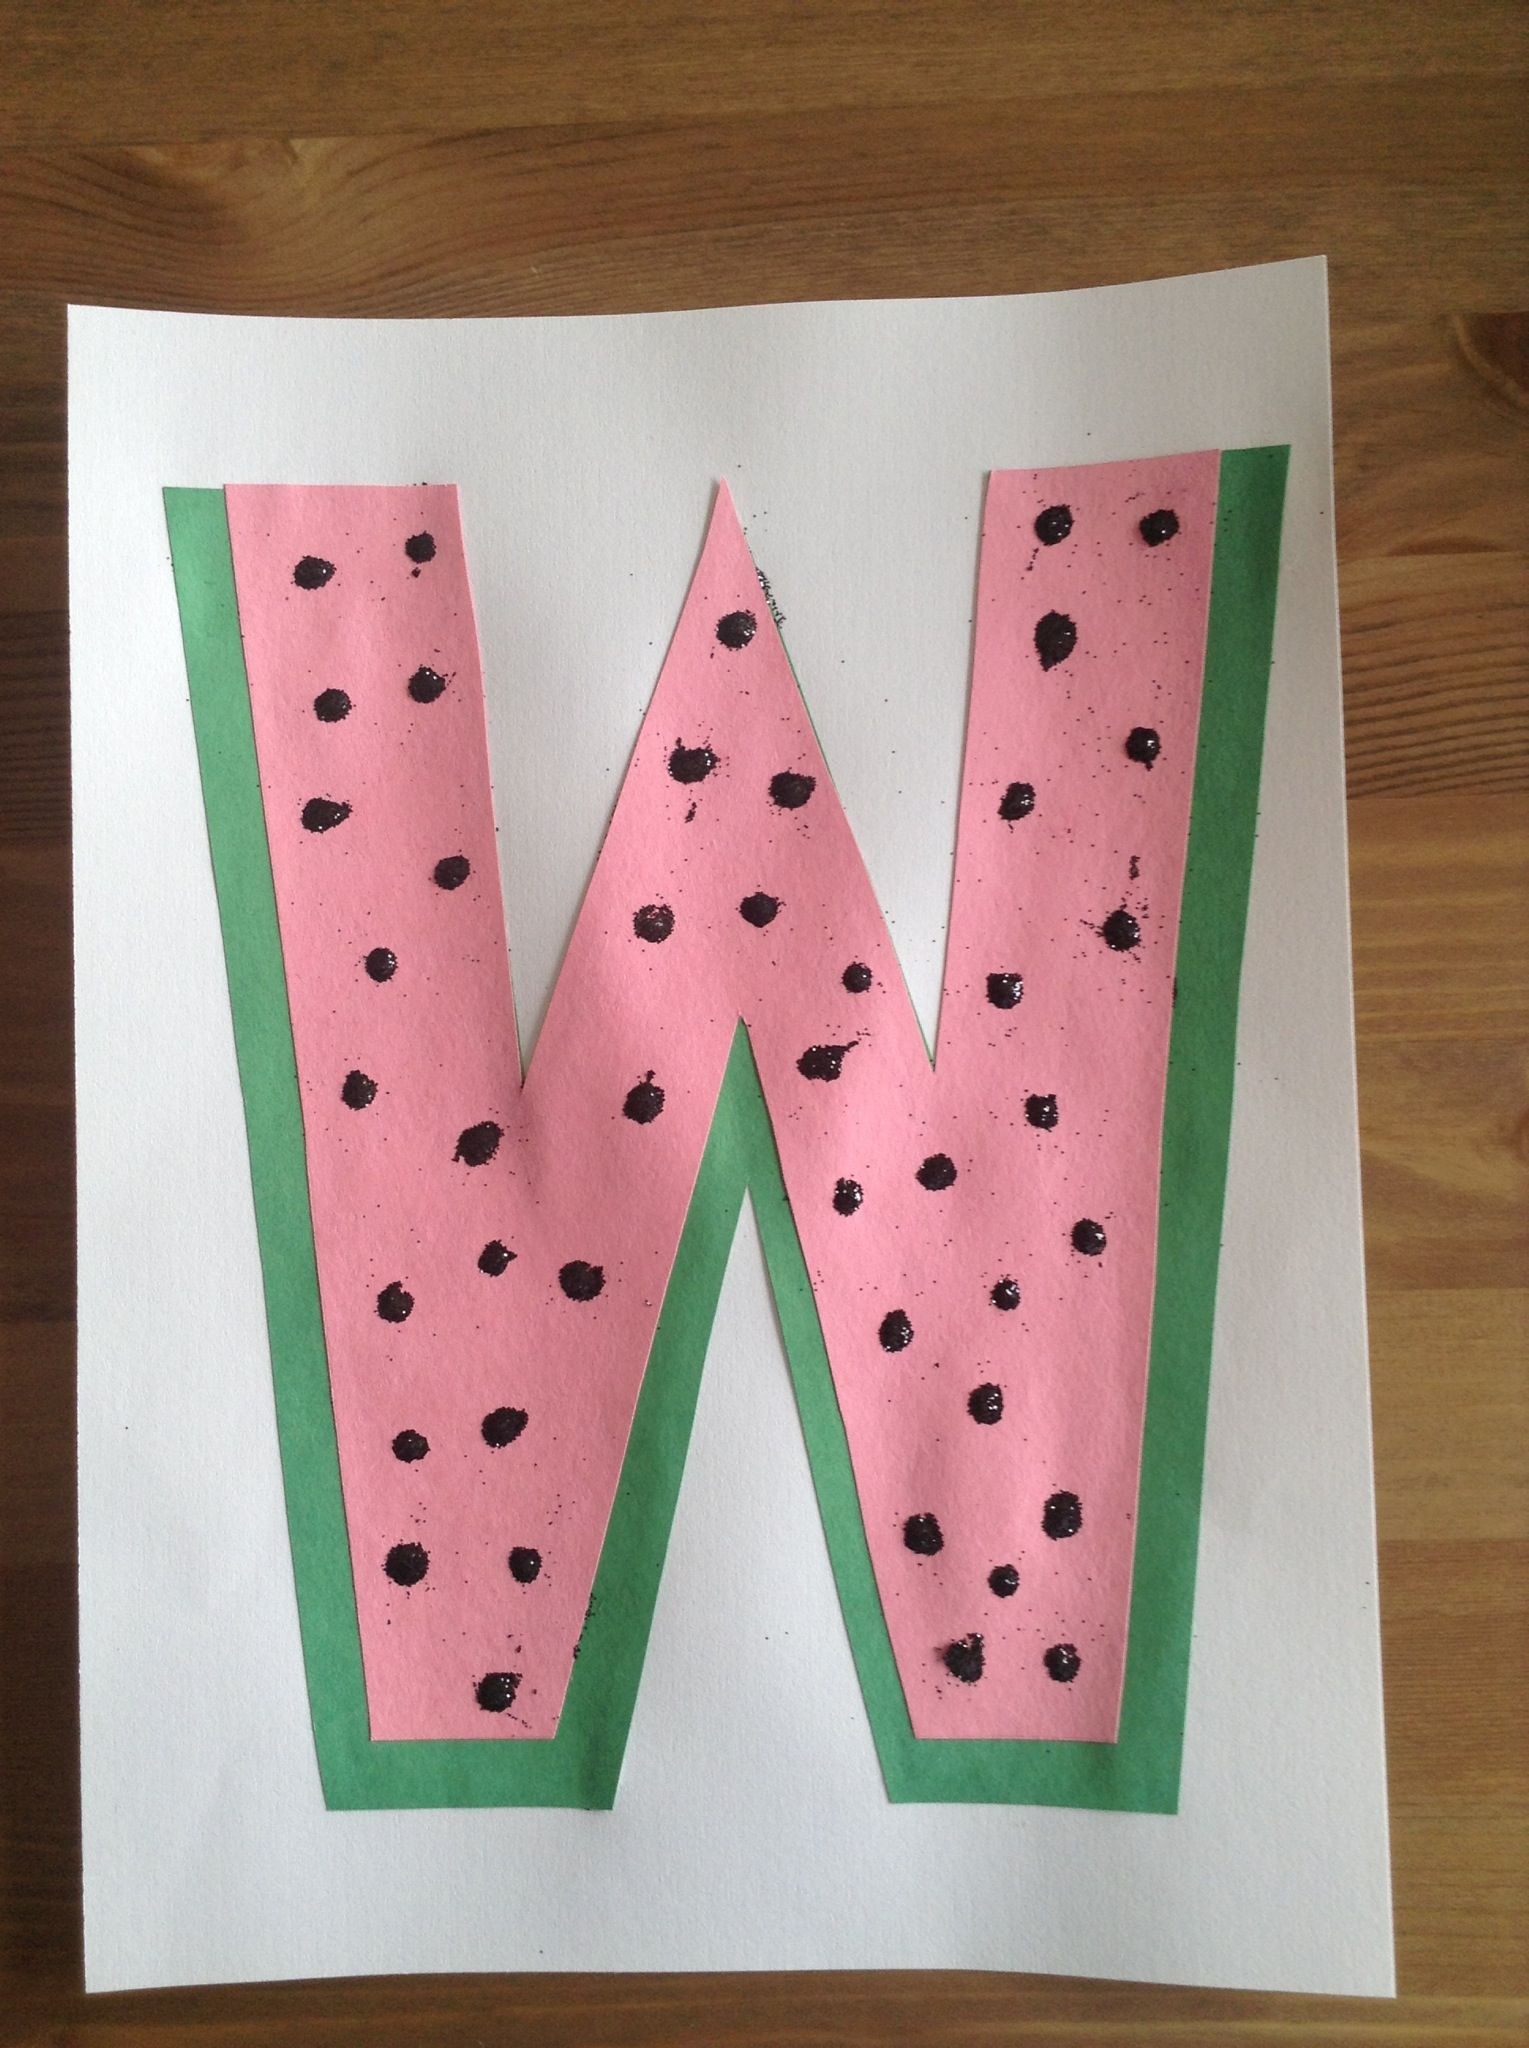 Best ideas about W Crafts For Preschoolers . Save or Pin W is for Watermelon Craft Preschool Craft Letter of Now.